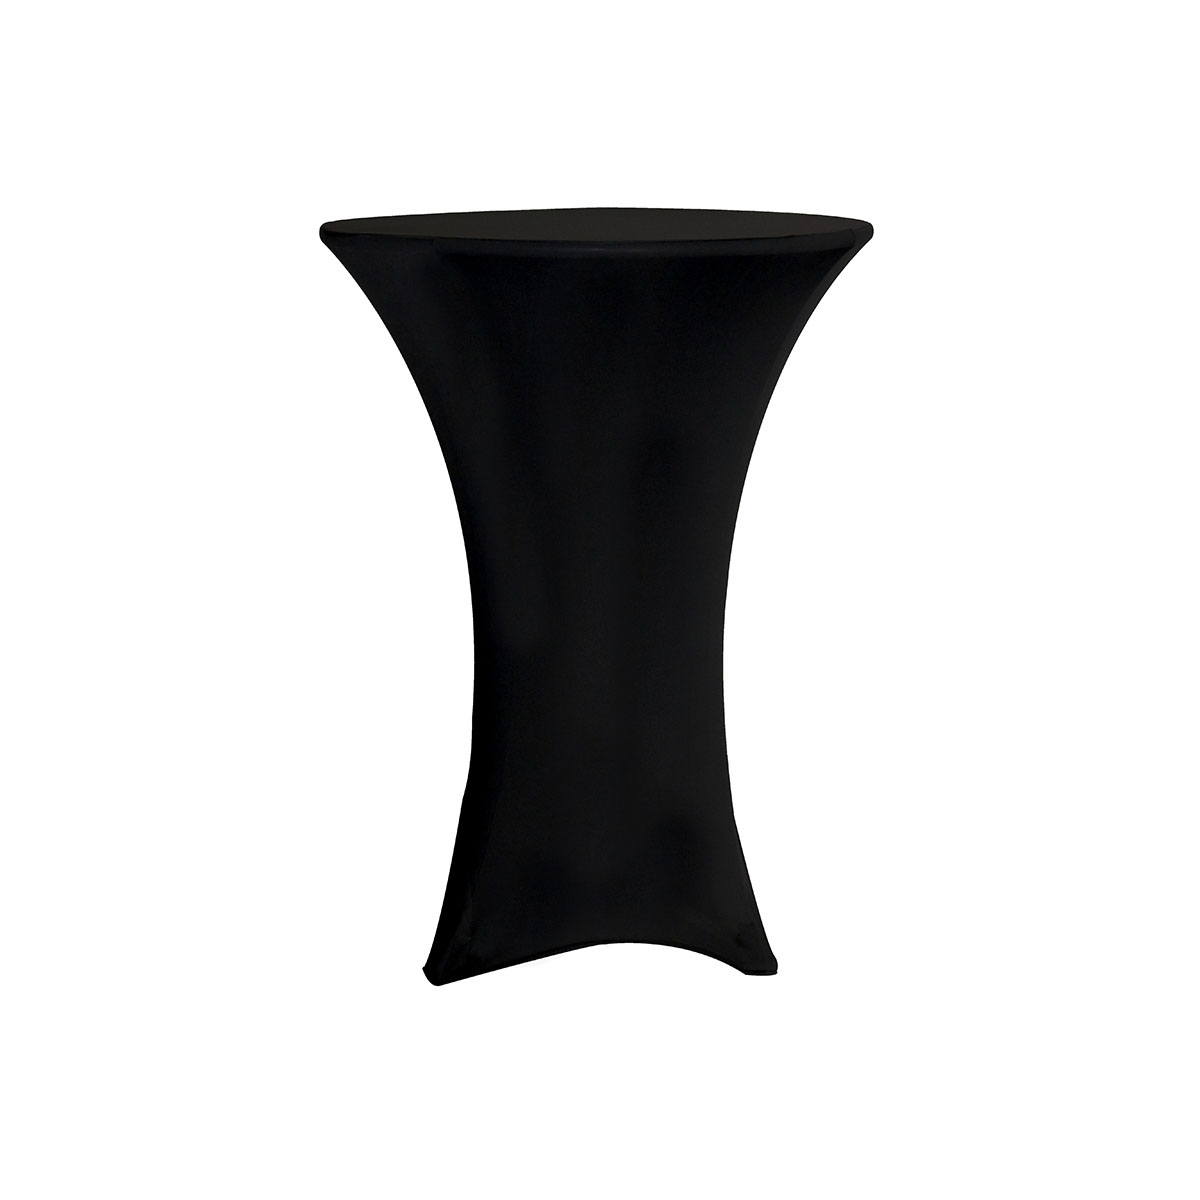 party chair covers walmart mid century recliner uk your 30 inch highboy cocktail round stretch spandex table cover black for wedding birthday patio etc com